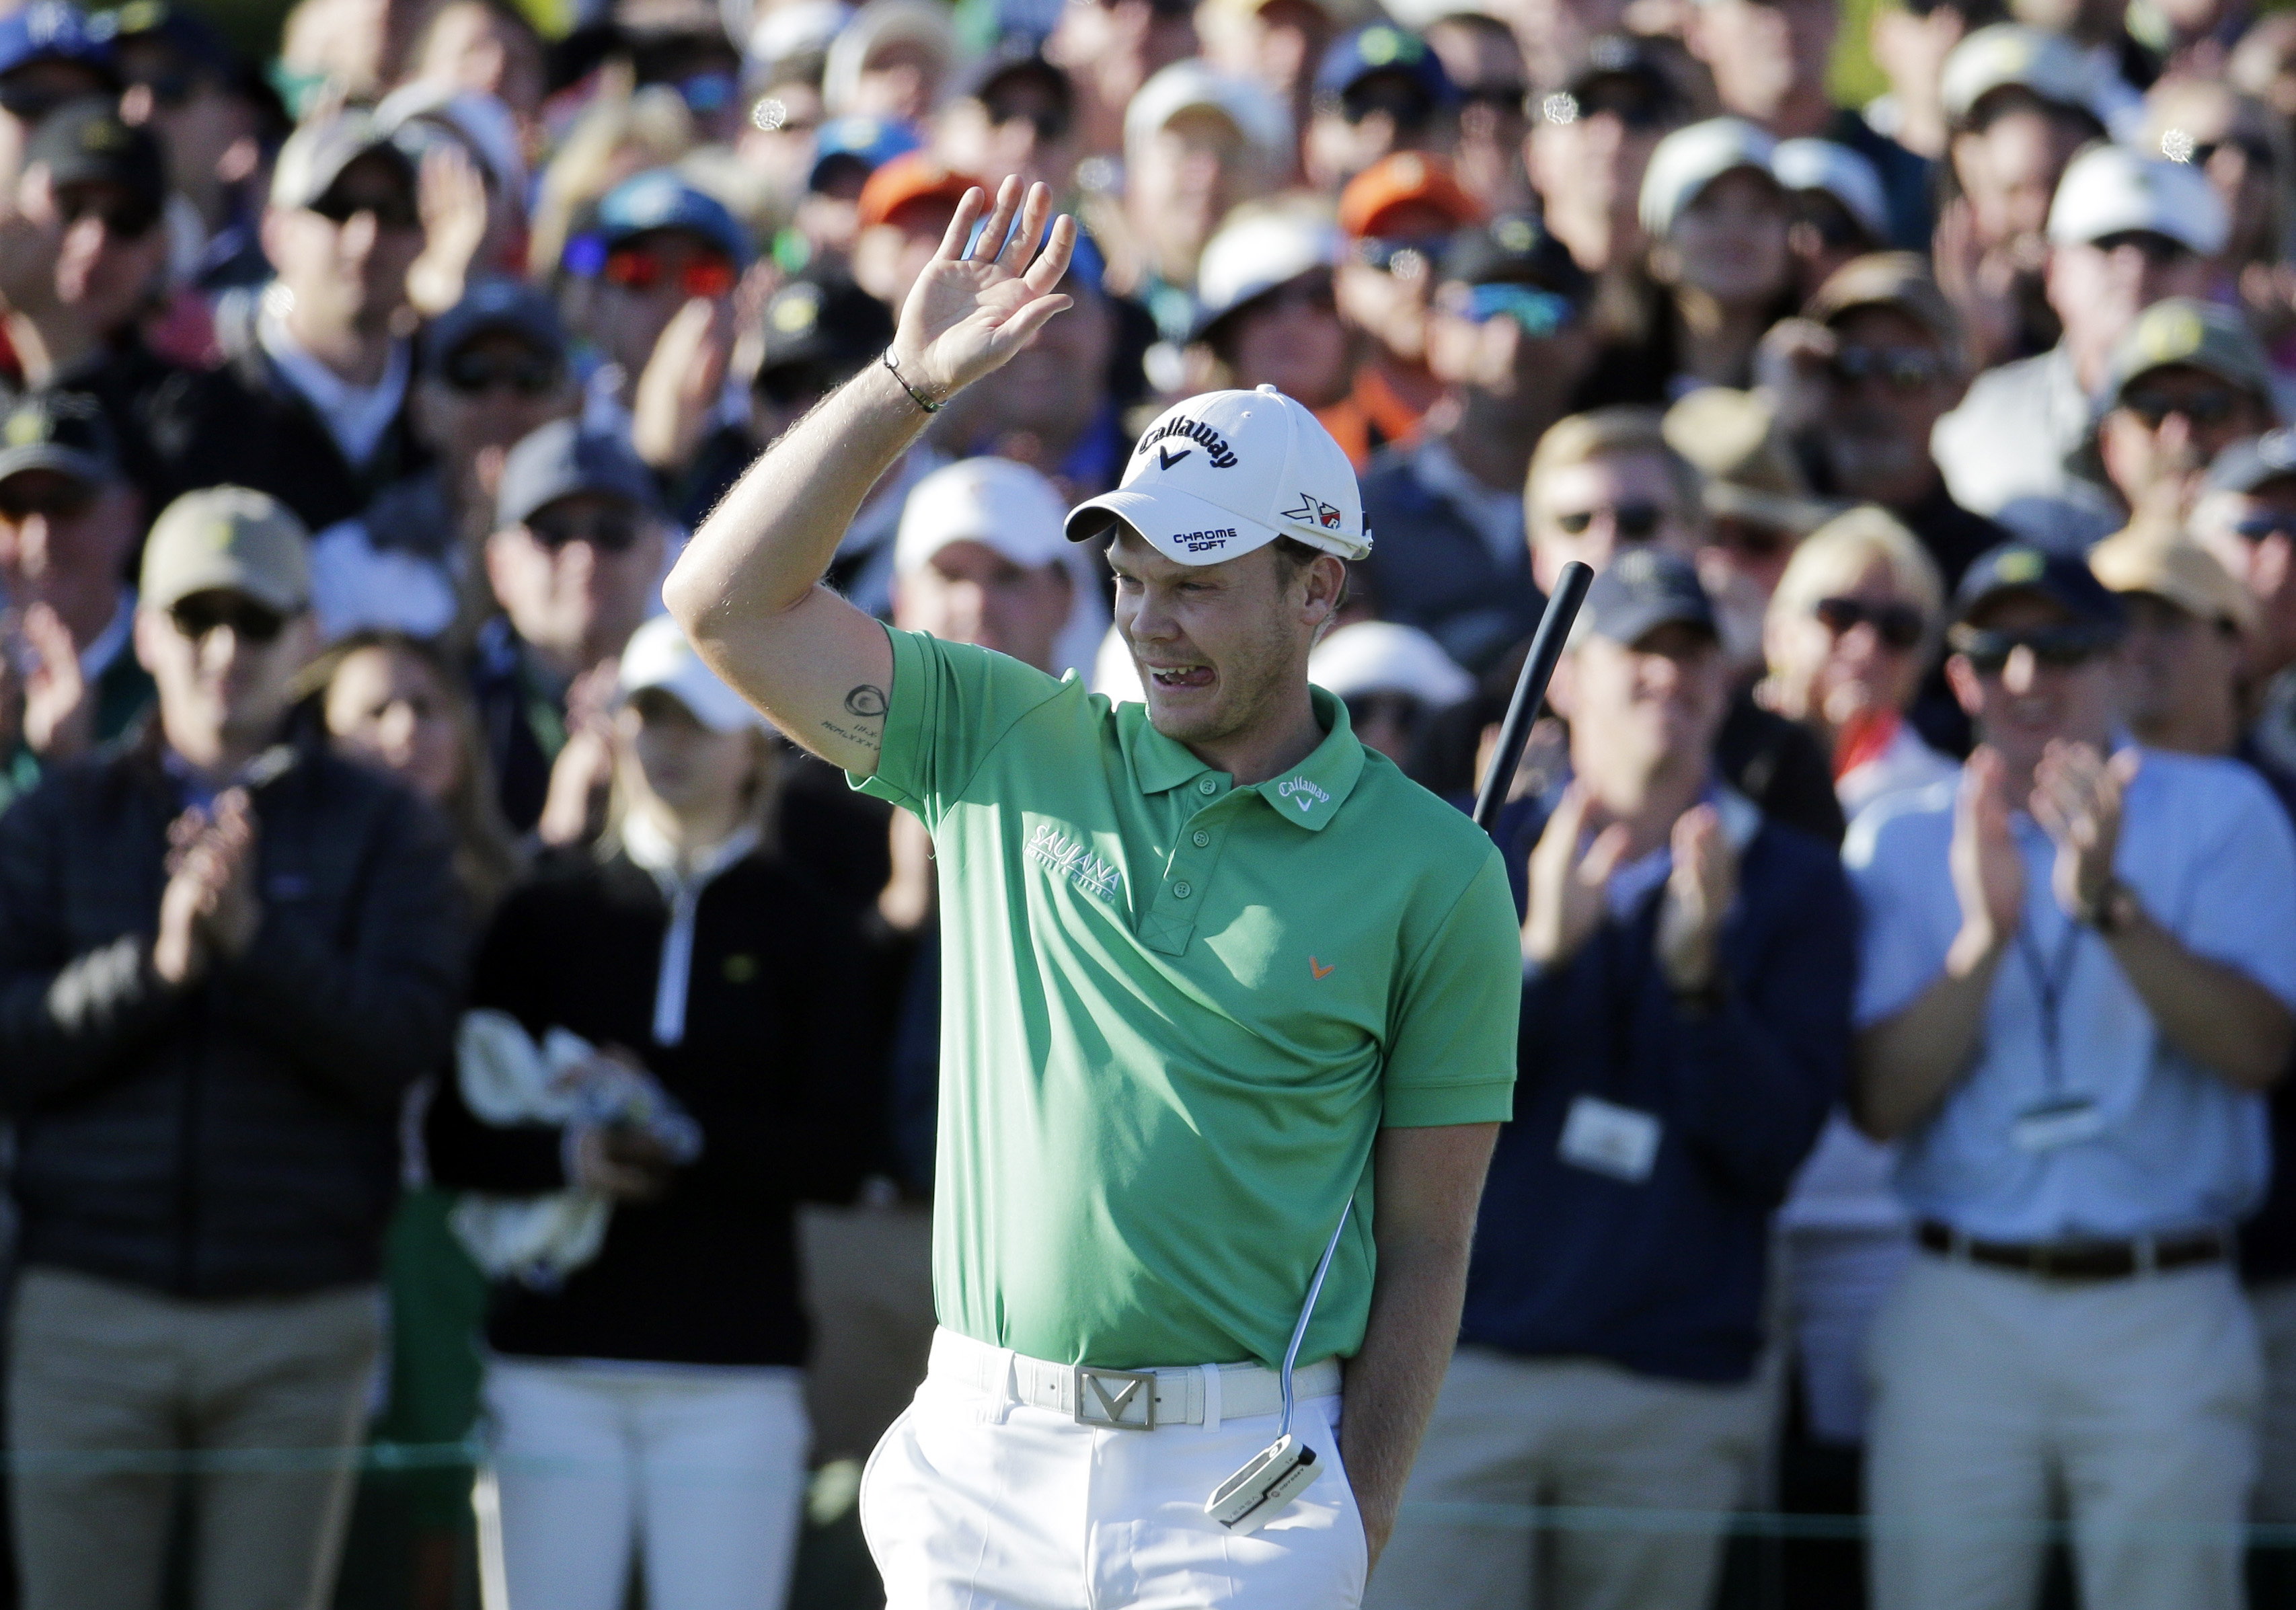 Danny Willett, of England, celebrates on the 18th hole after finishing the final round of the Masters golf tournament Sunday, April 10, 2016, in Augusta, Ga. (AP Photo/Charlie